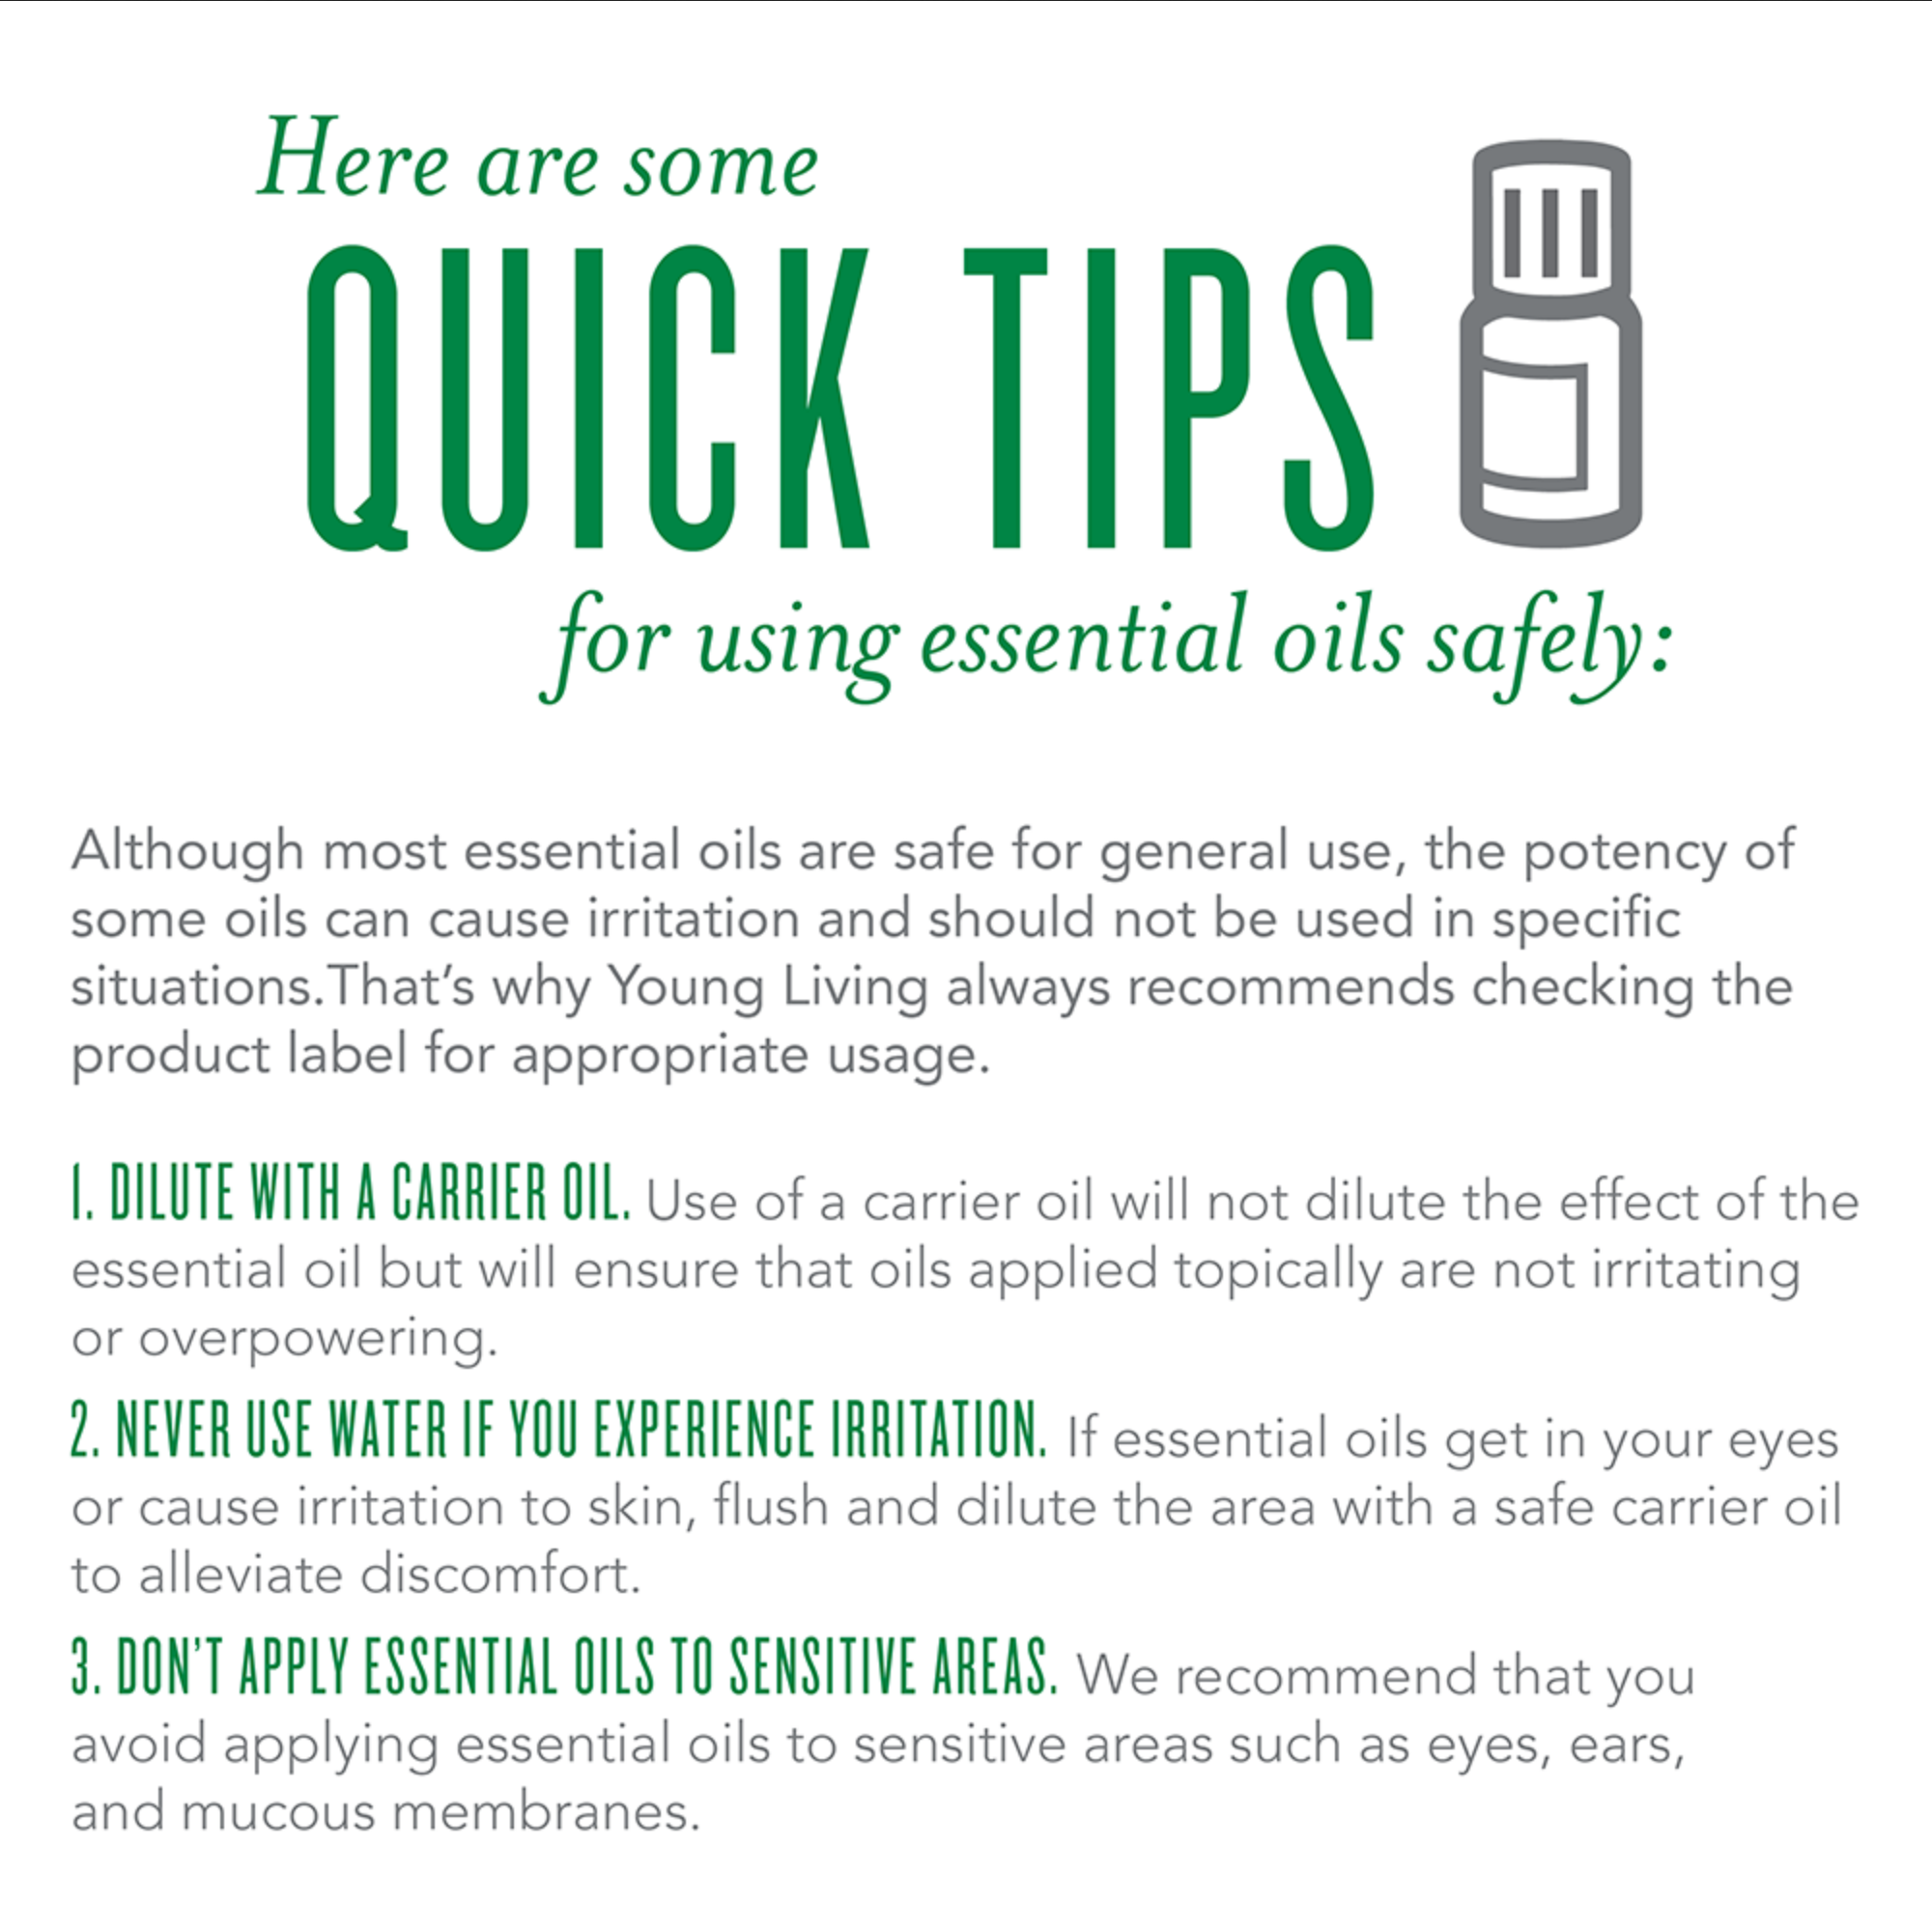 Be safe when using essential oils - learn more about the oils we use at SBW -  ESSENTIAL OILS